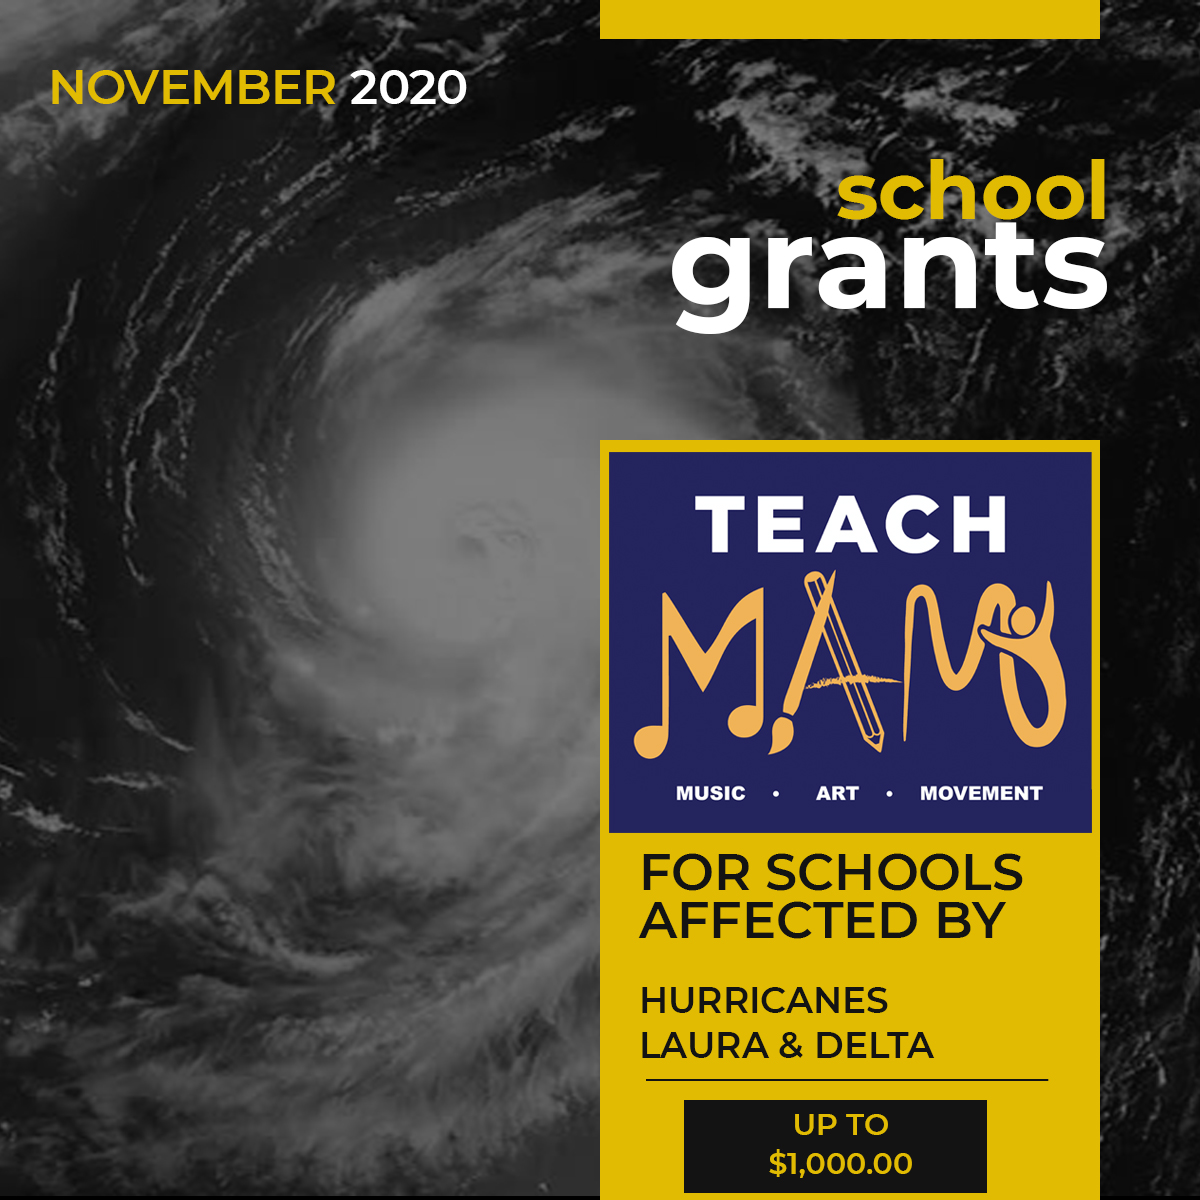 Teach MAM – Grants to Schools in Areas Affected by Hurricanes